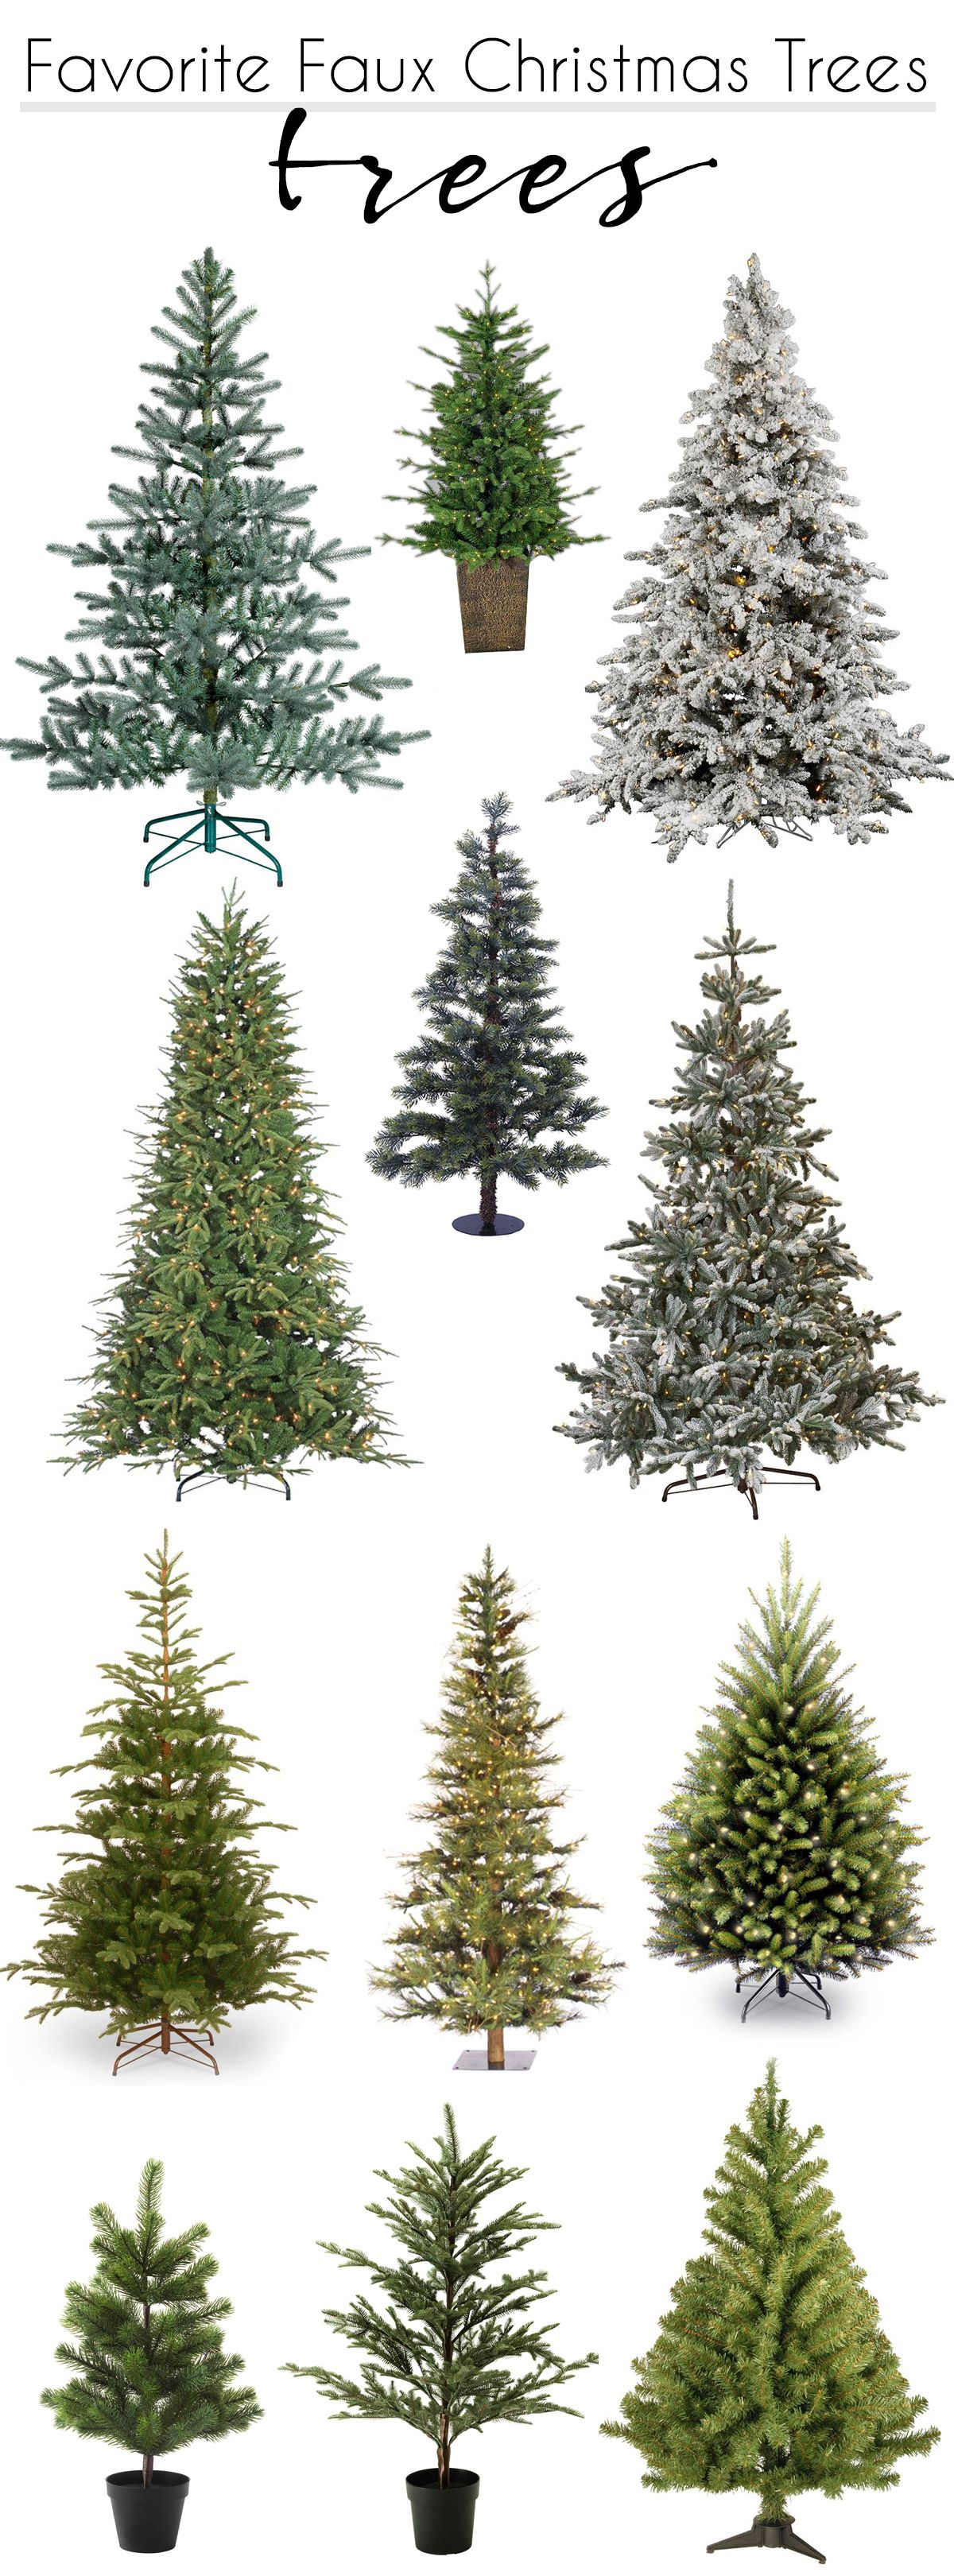 Friday Favorites: My favorite faux Christmas Trees | Faux christmas trees, Best artificial ...